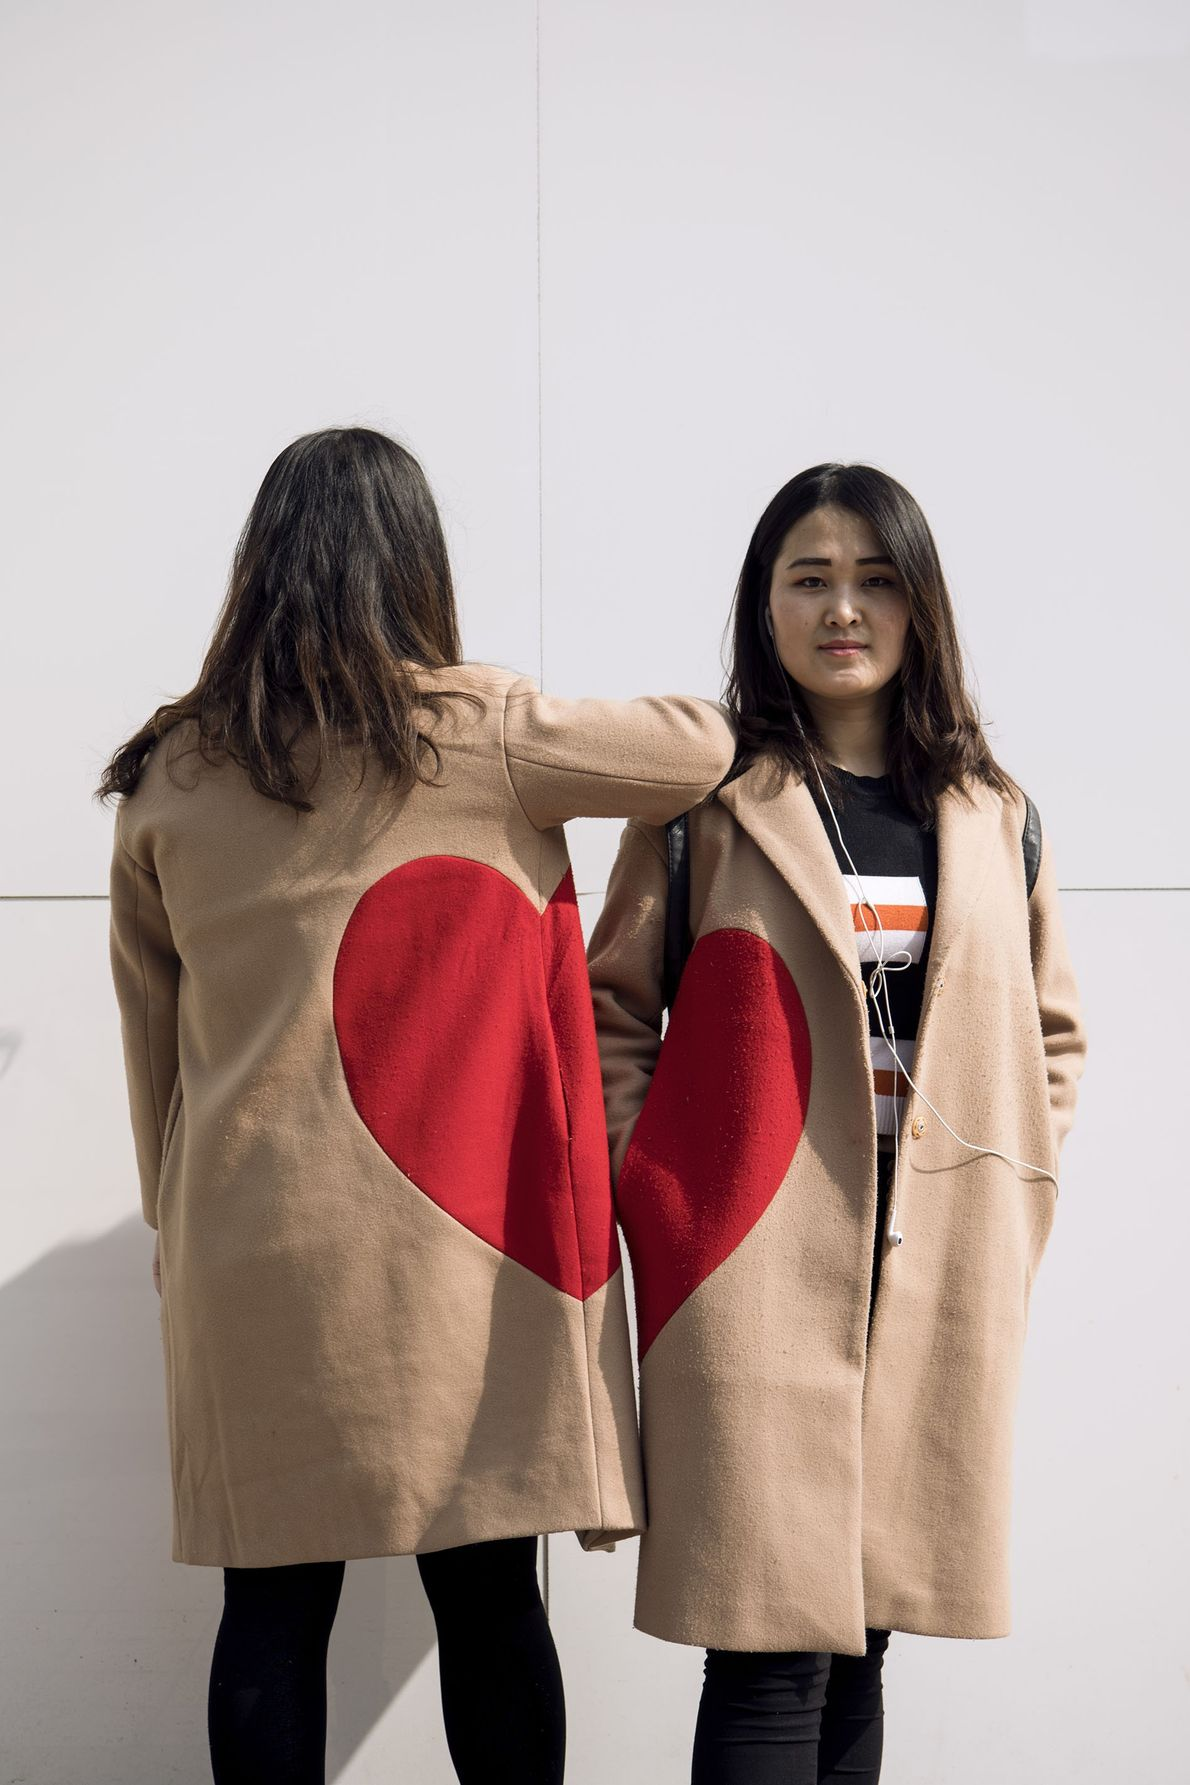 Two girls wear matching coats with a heart design